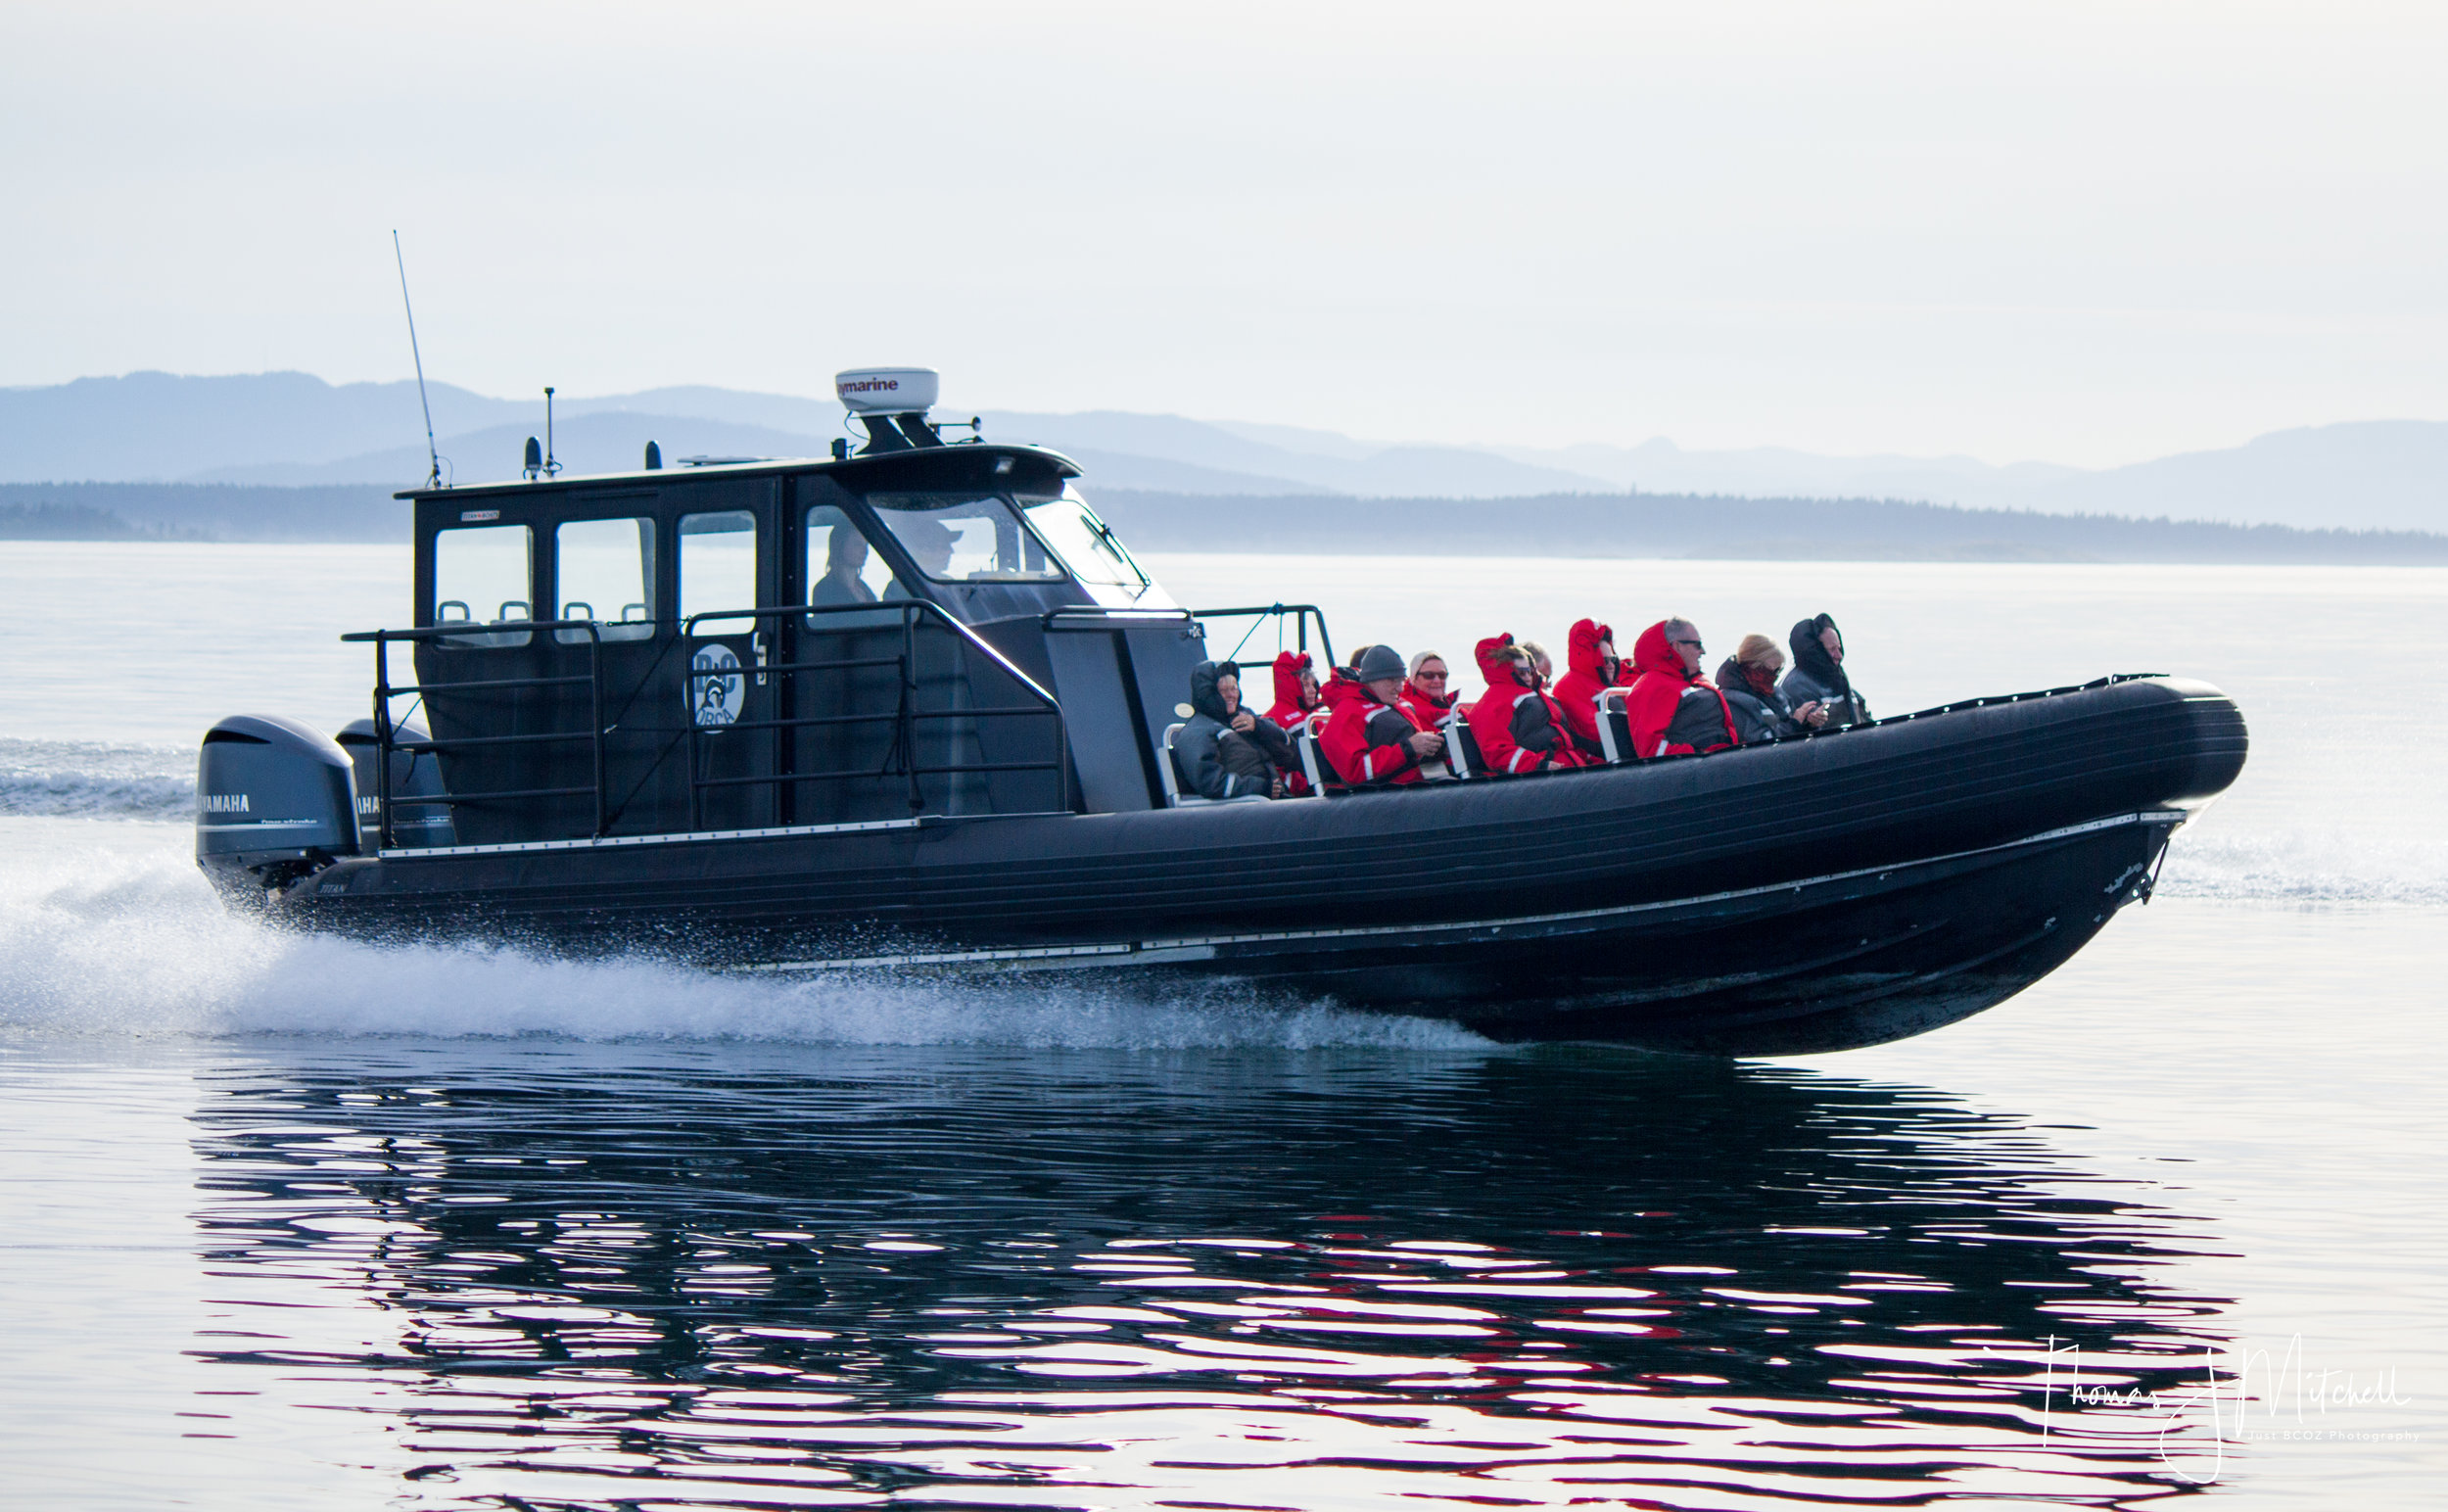 BC ORCA - 10:00am & 2:00pm DEPARTURES12 PASSENGER MAX, INDOOR/OUTDOOR SEATING, WASHROOM, SURVIVAL SUITS PROVIDED